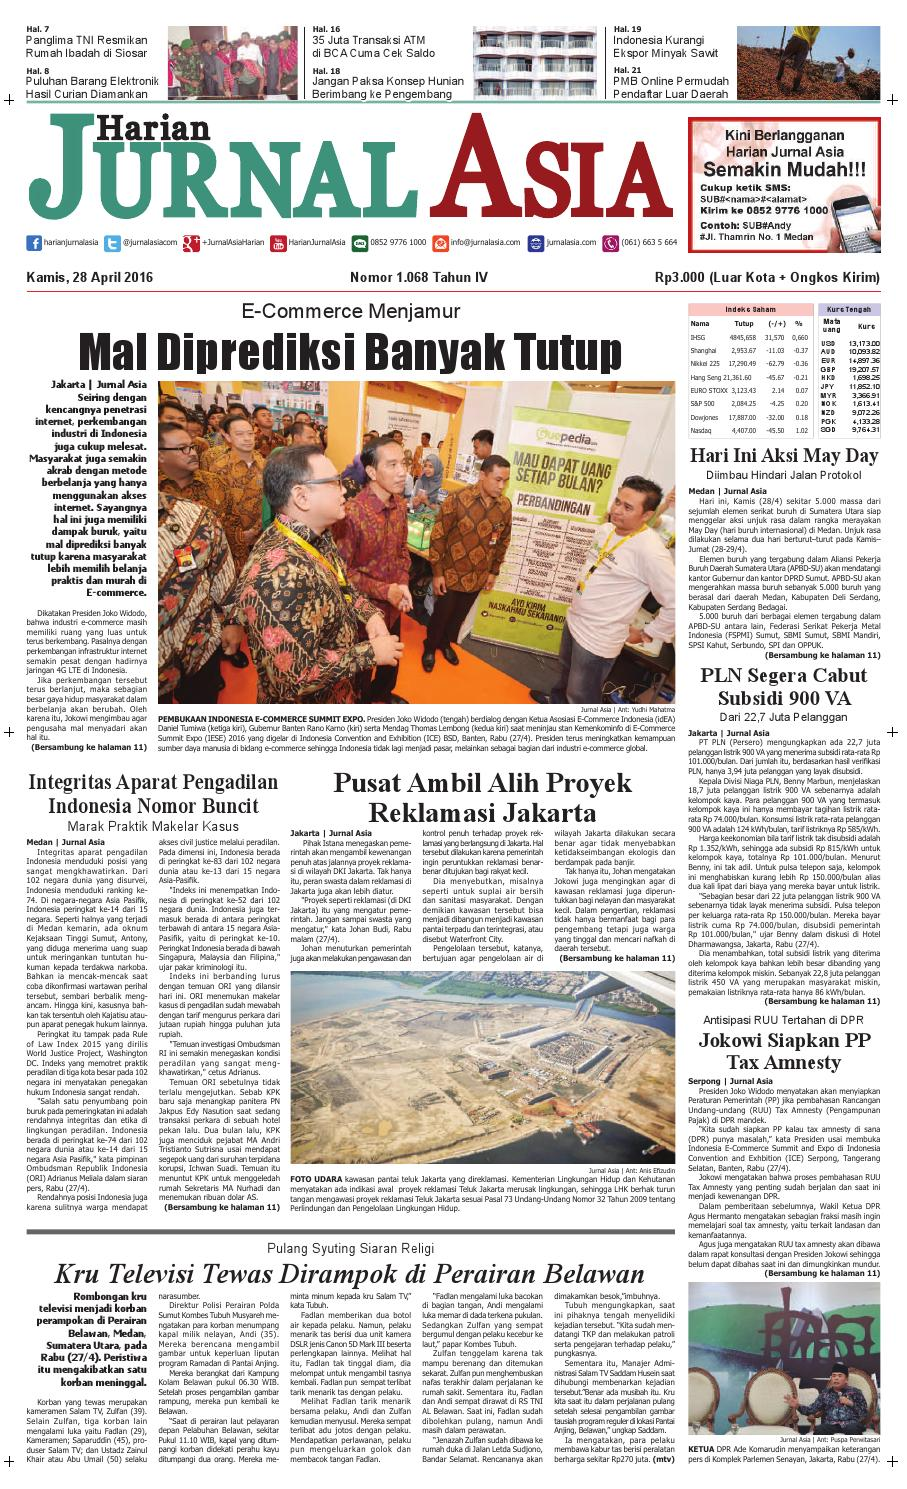 Harian Jurnal Asia Edisi Kamis 28 April 2016 By Dongkrak Botol Box Pvc Tomeco 2 Ton Medan Issuu